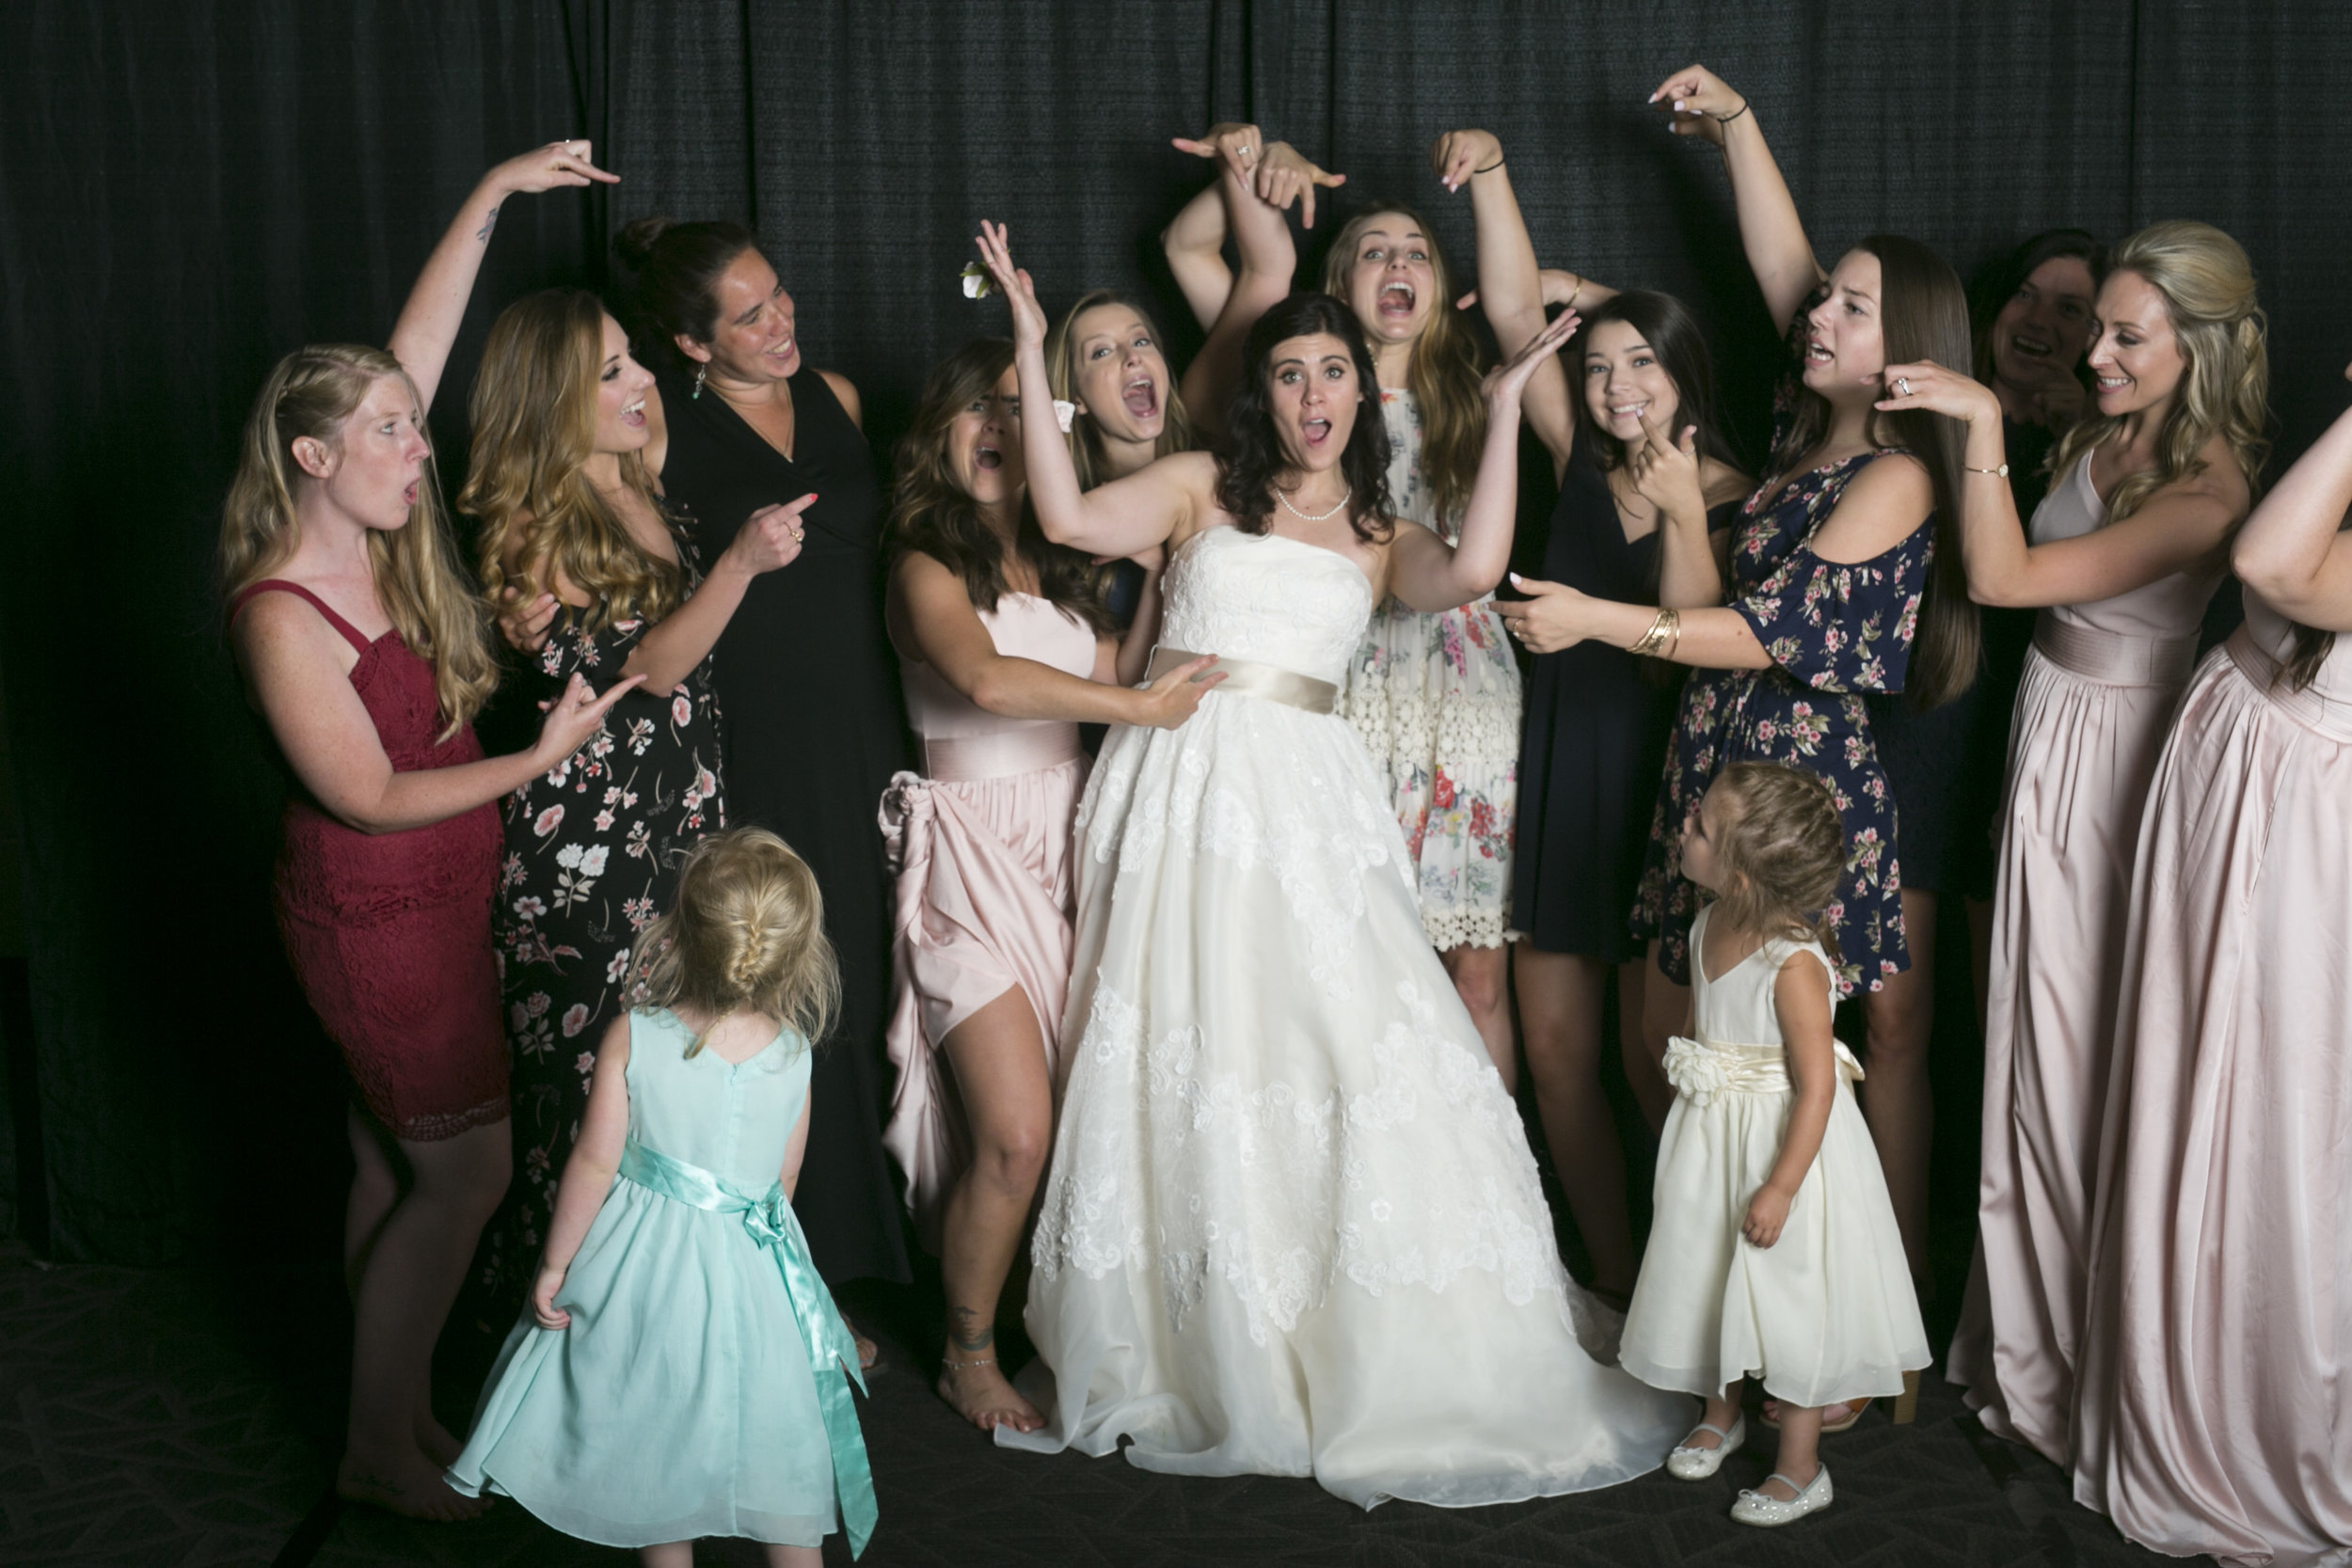 wedding photo booth-110.jpg